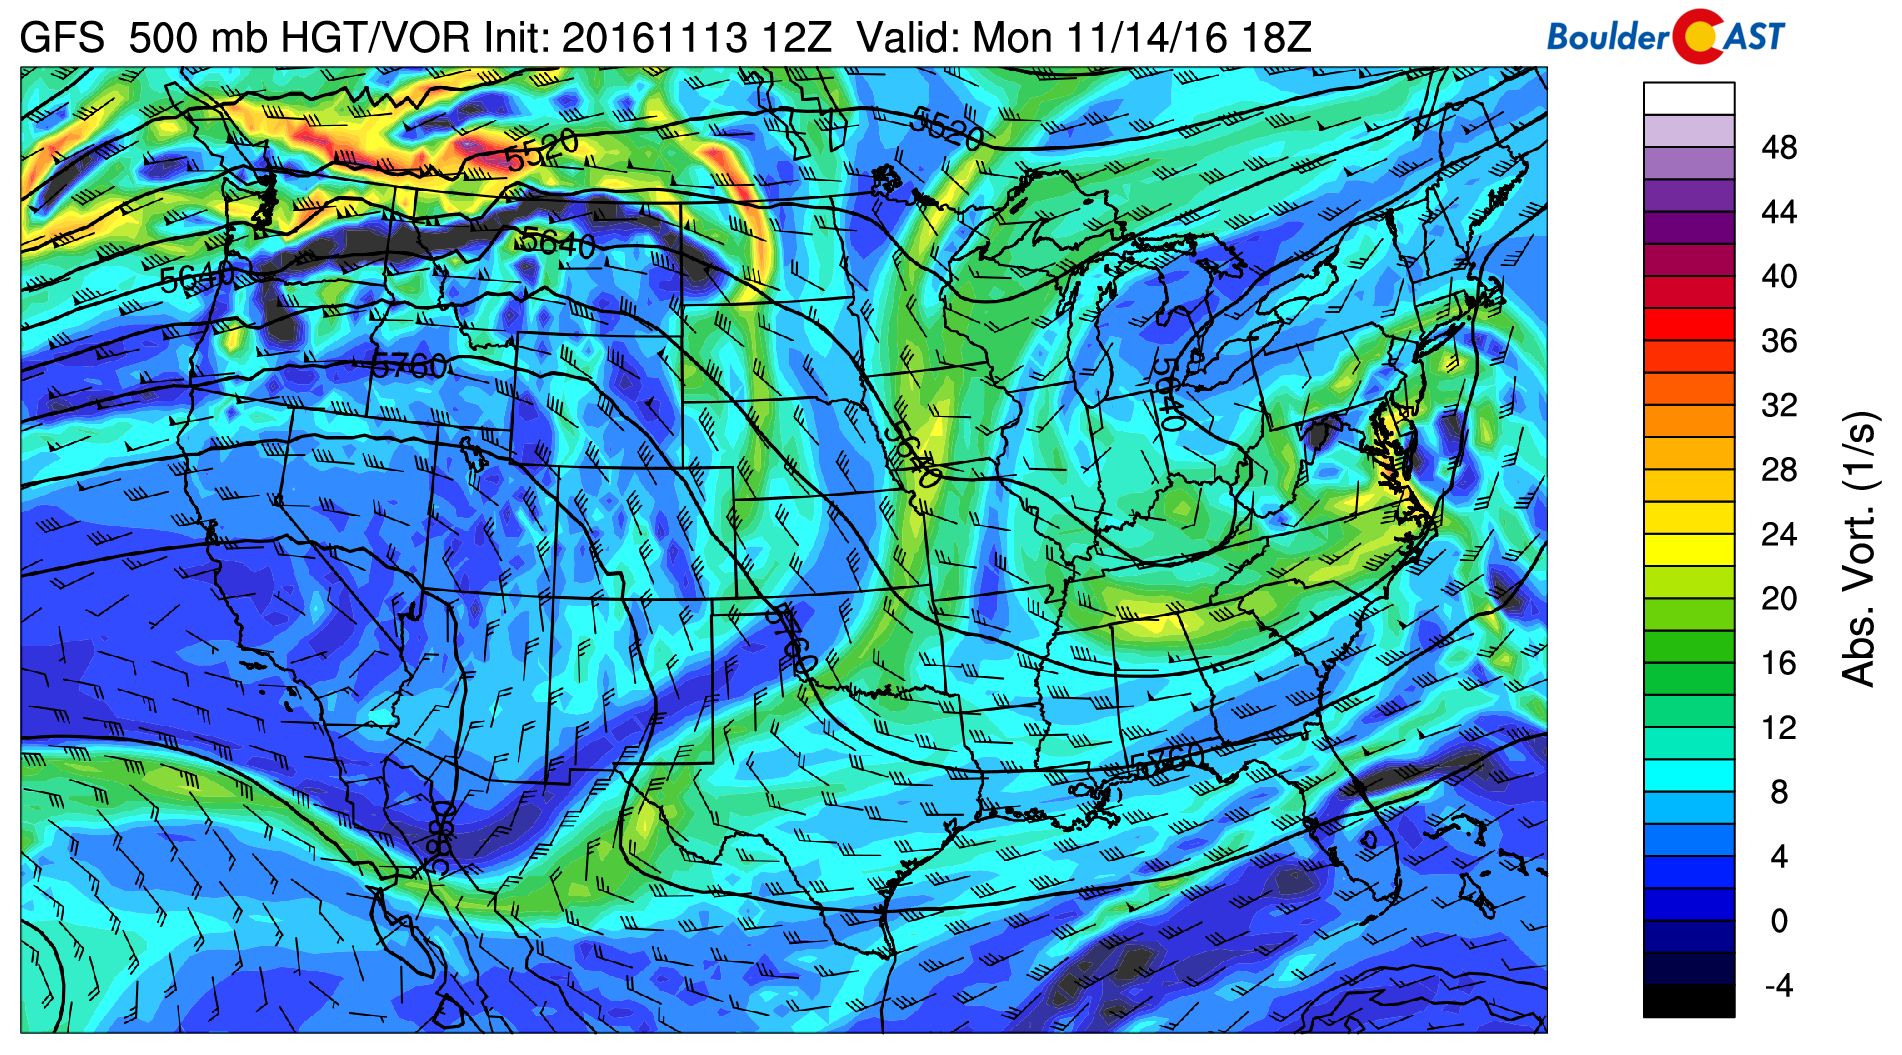 GFS 500mb vorticity map for Monday afternoon